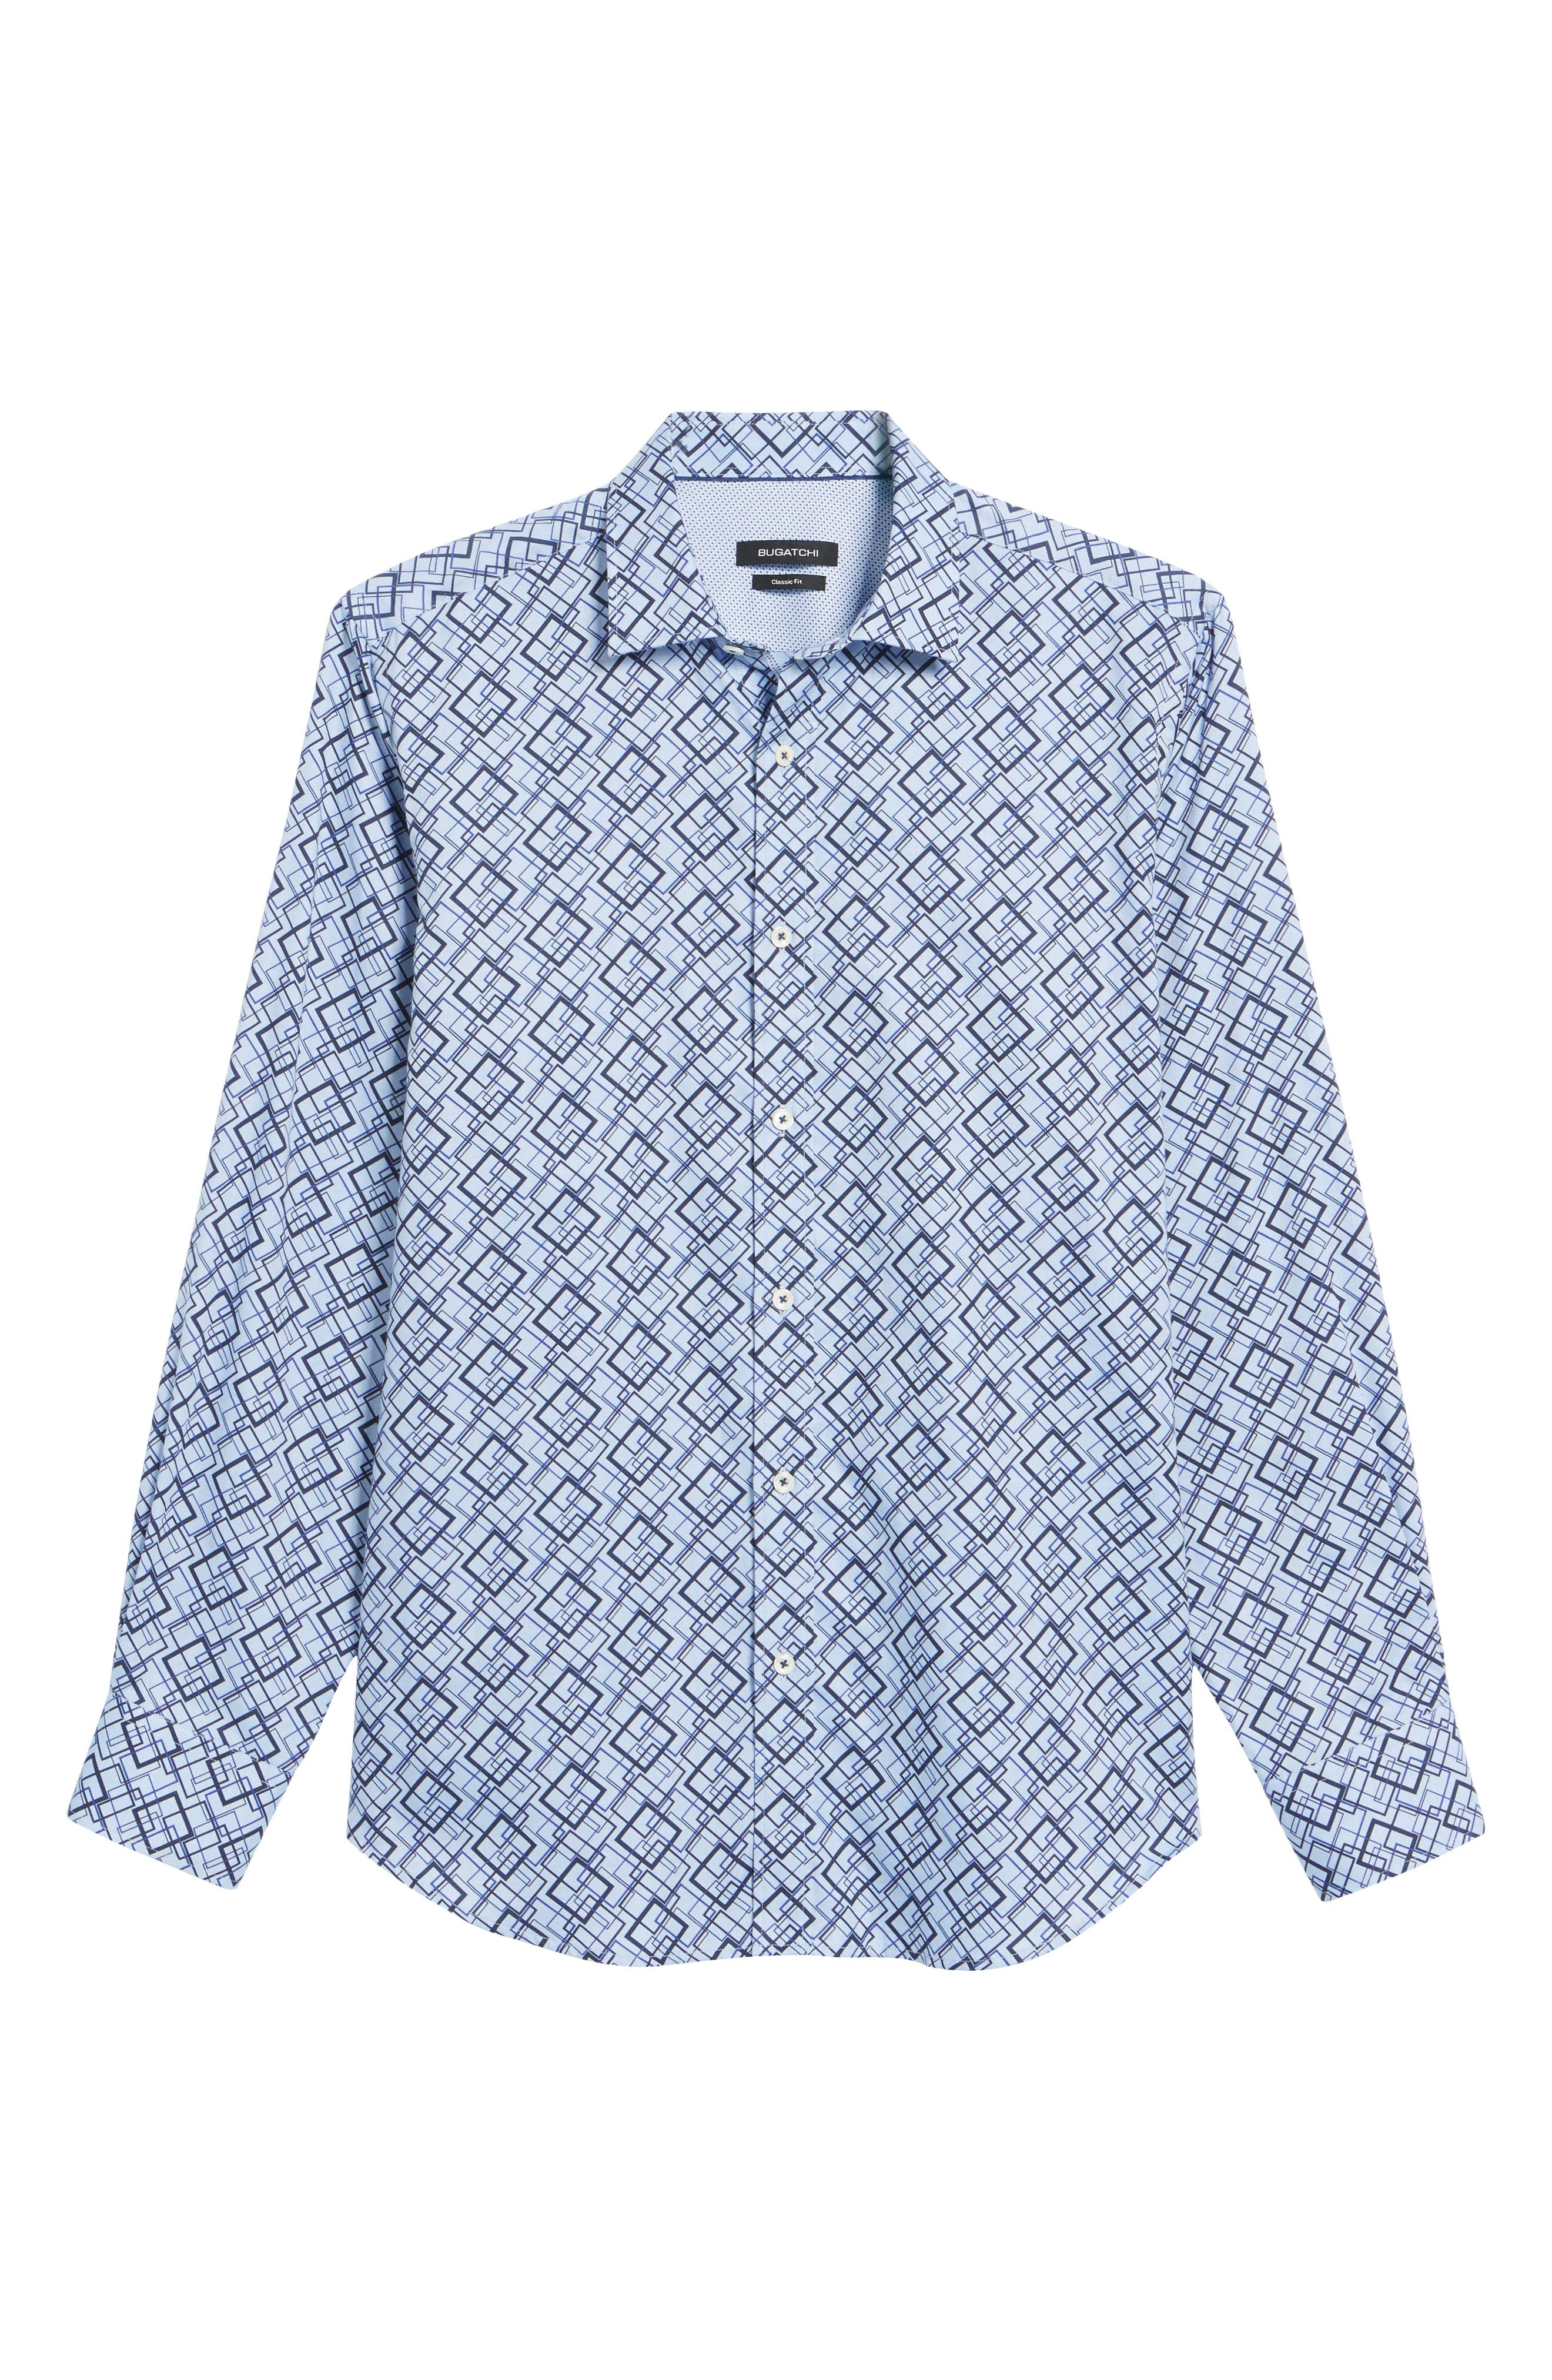 Classic Fit Woven Sport Shirt,                             Alternate thumbnail 6, color,                             422